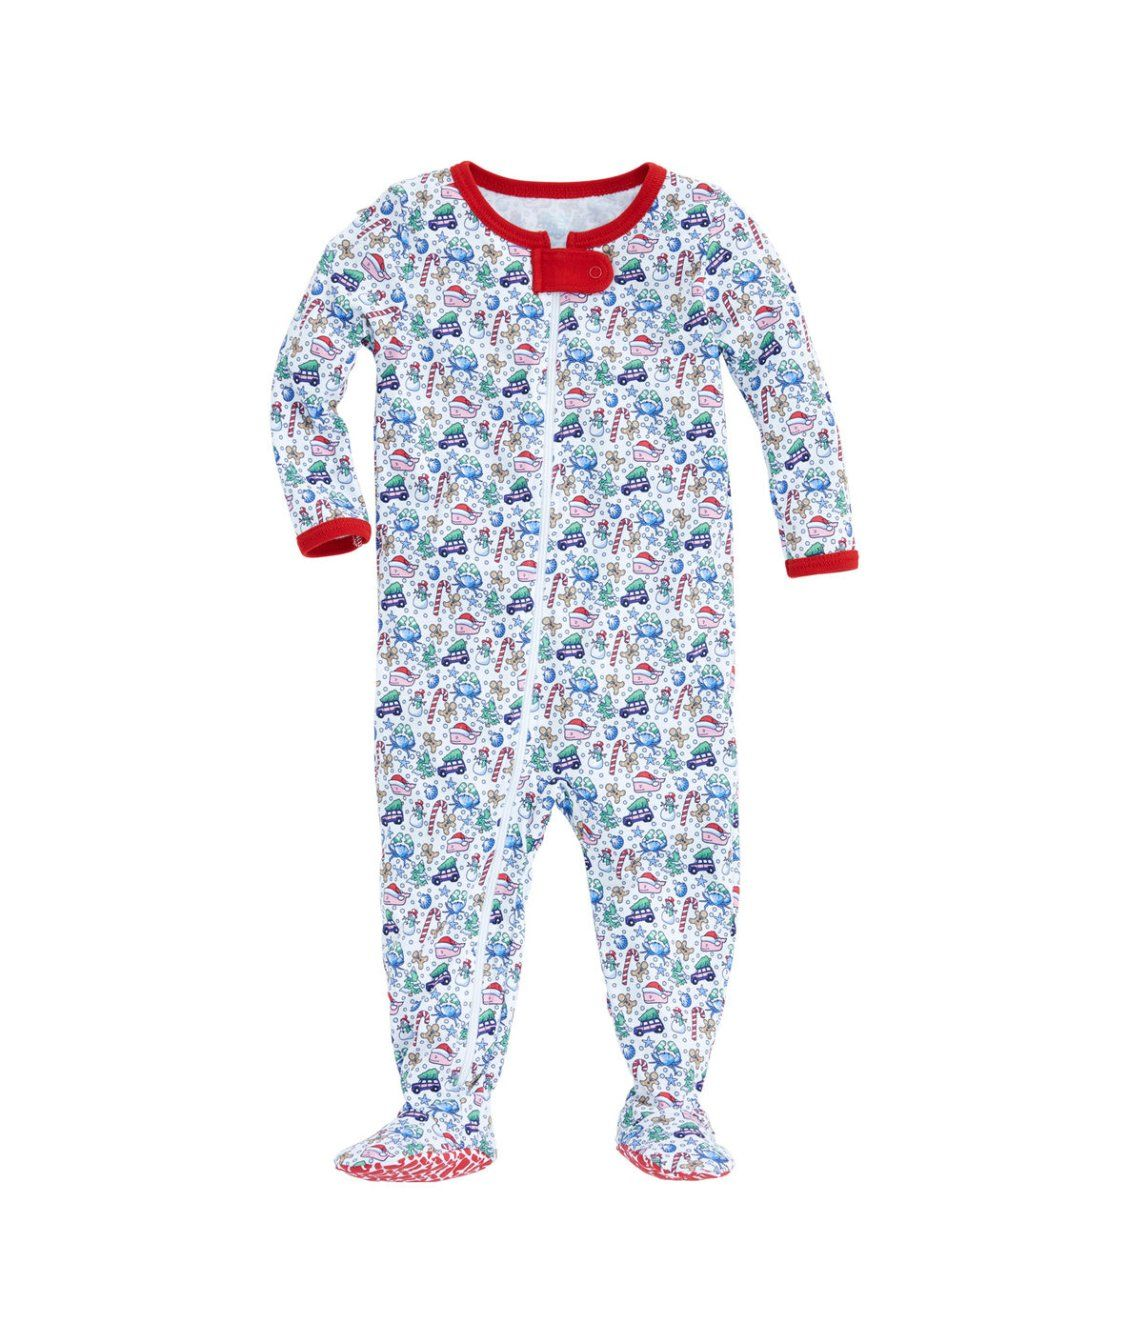 Baby Layette Jumpsuit Onesies Baby Unisex Baby Kids One-Piece Footed Pajamas